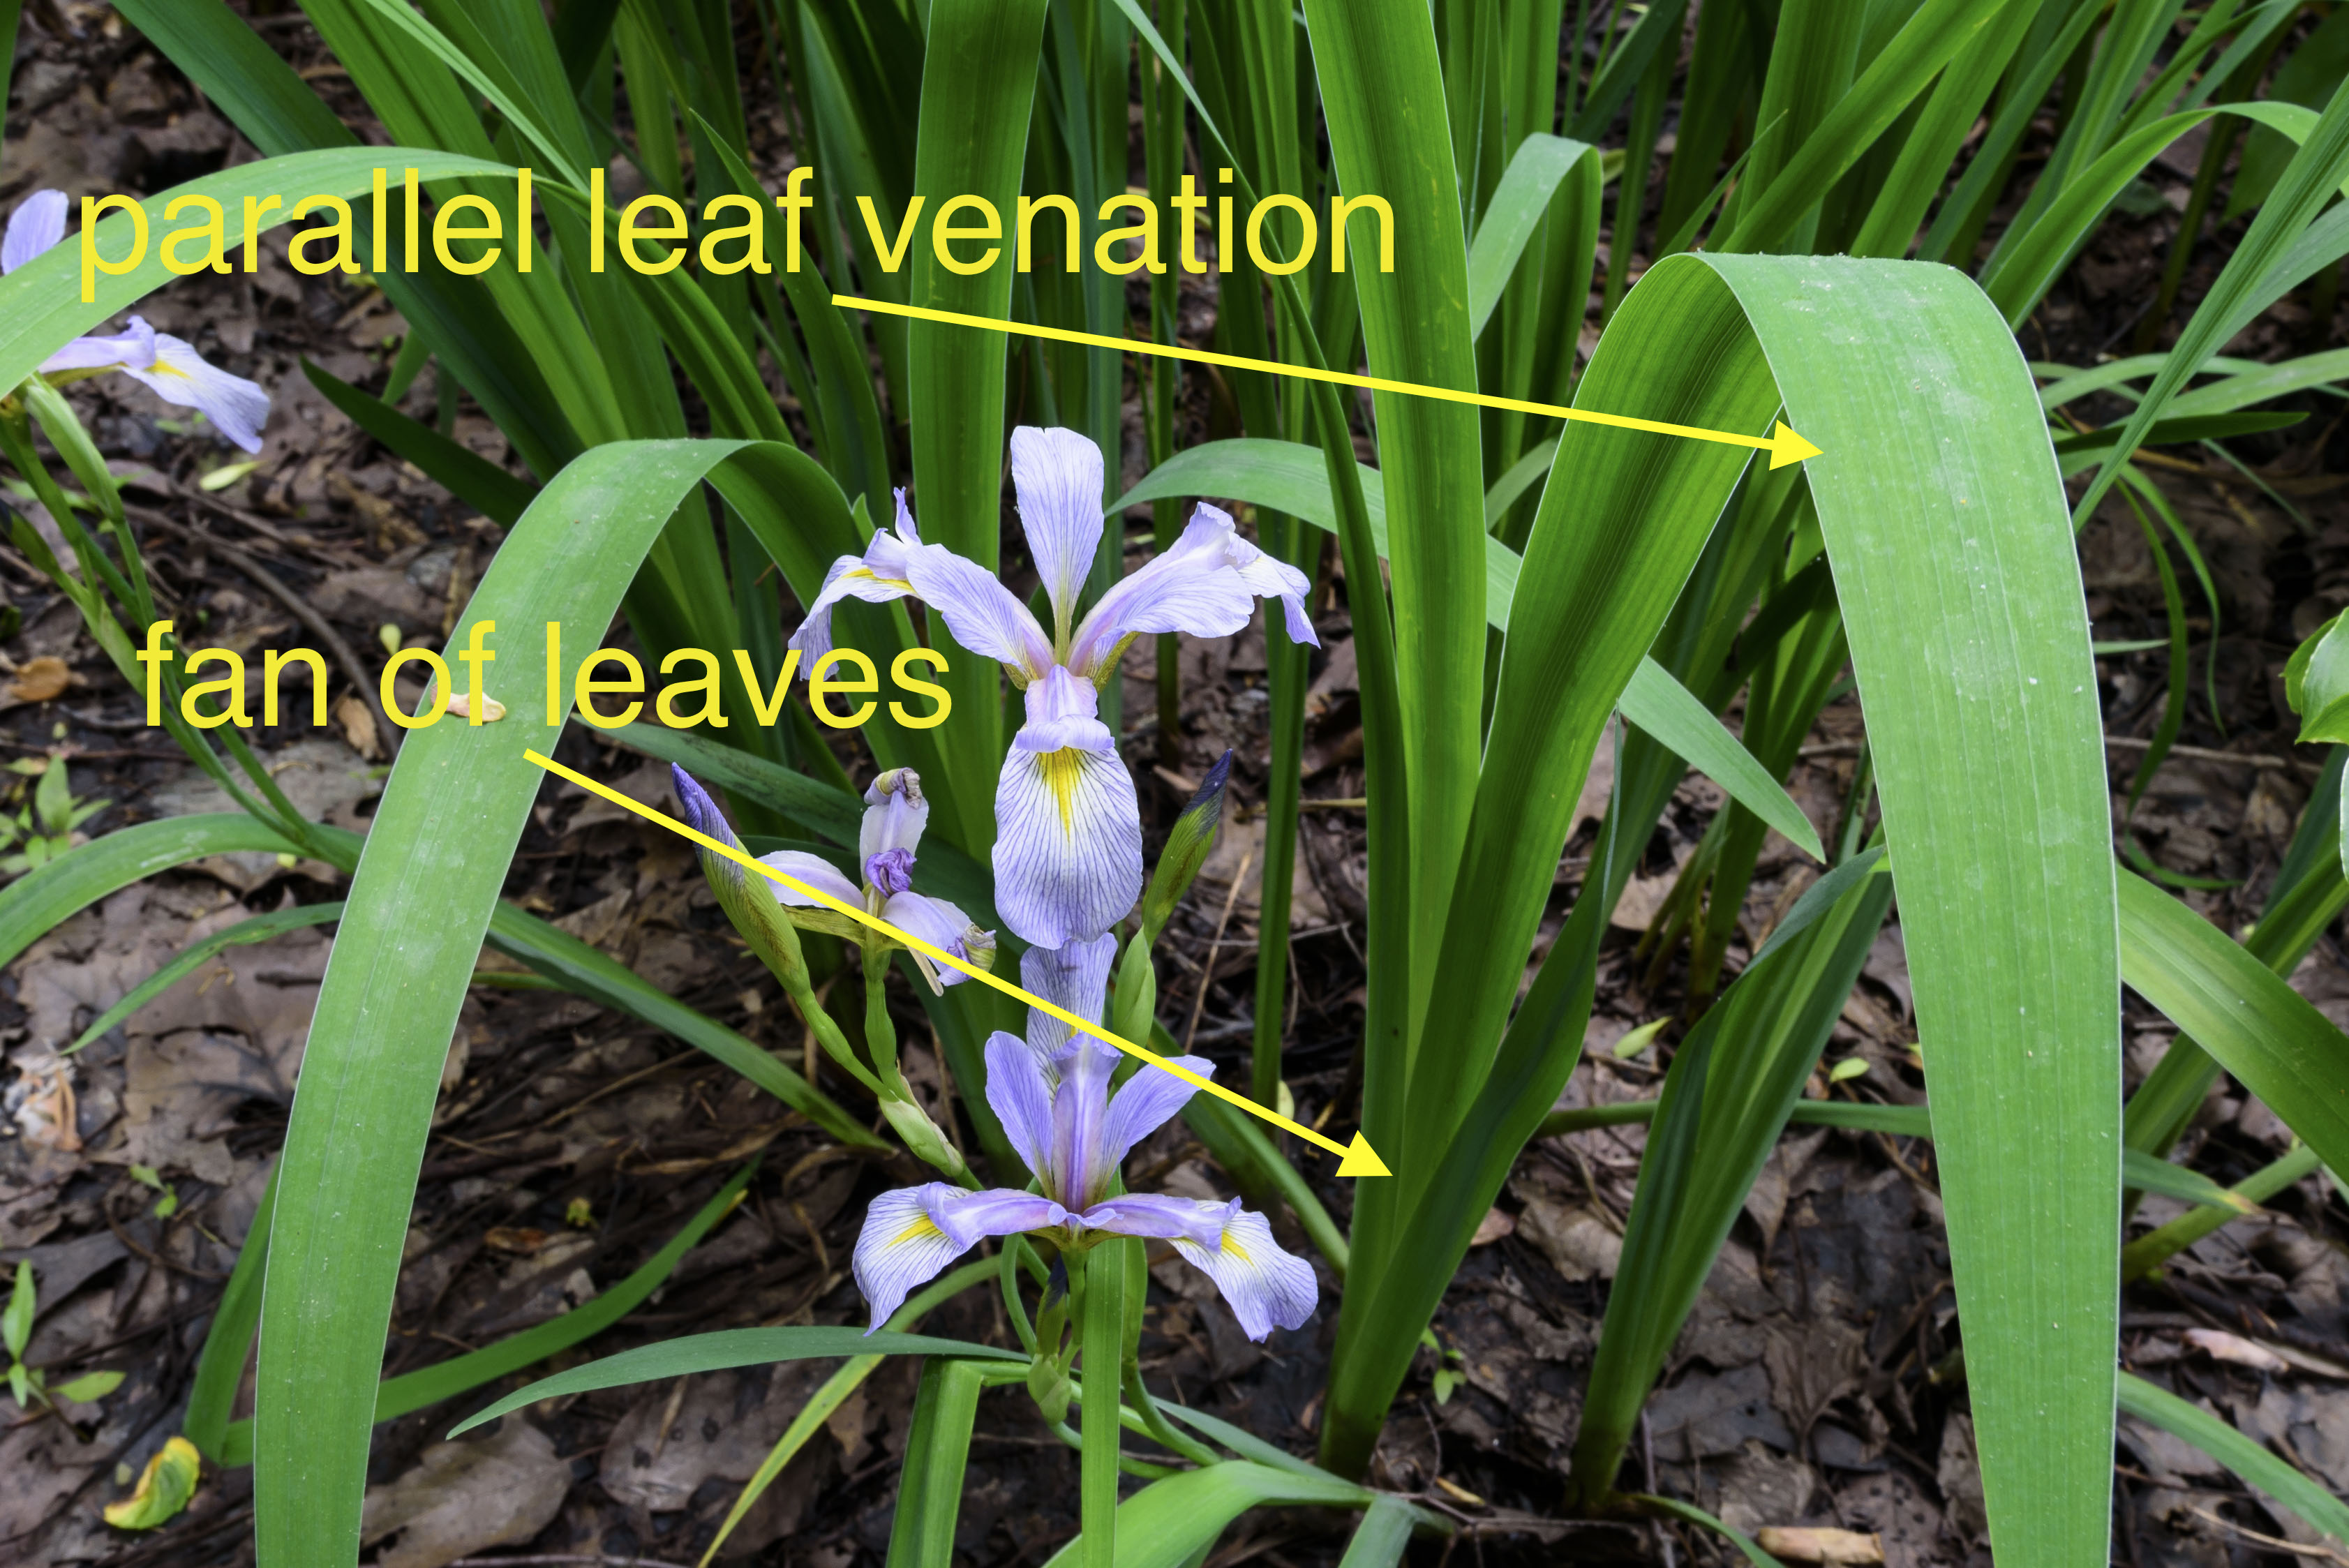 Iris flowers terminology and structure elizabeths wildflower blog irises are monocots monocots usually have different growth forms and habits from dicots this group of leaves arising fan like from a single point is a izmirmasajfo Images